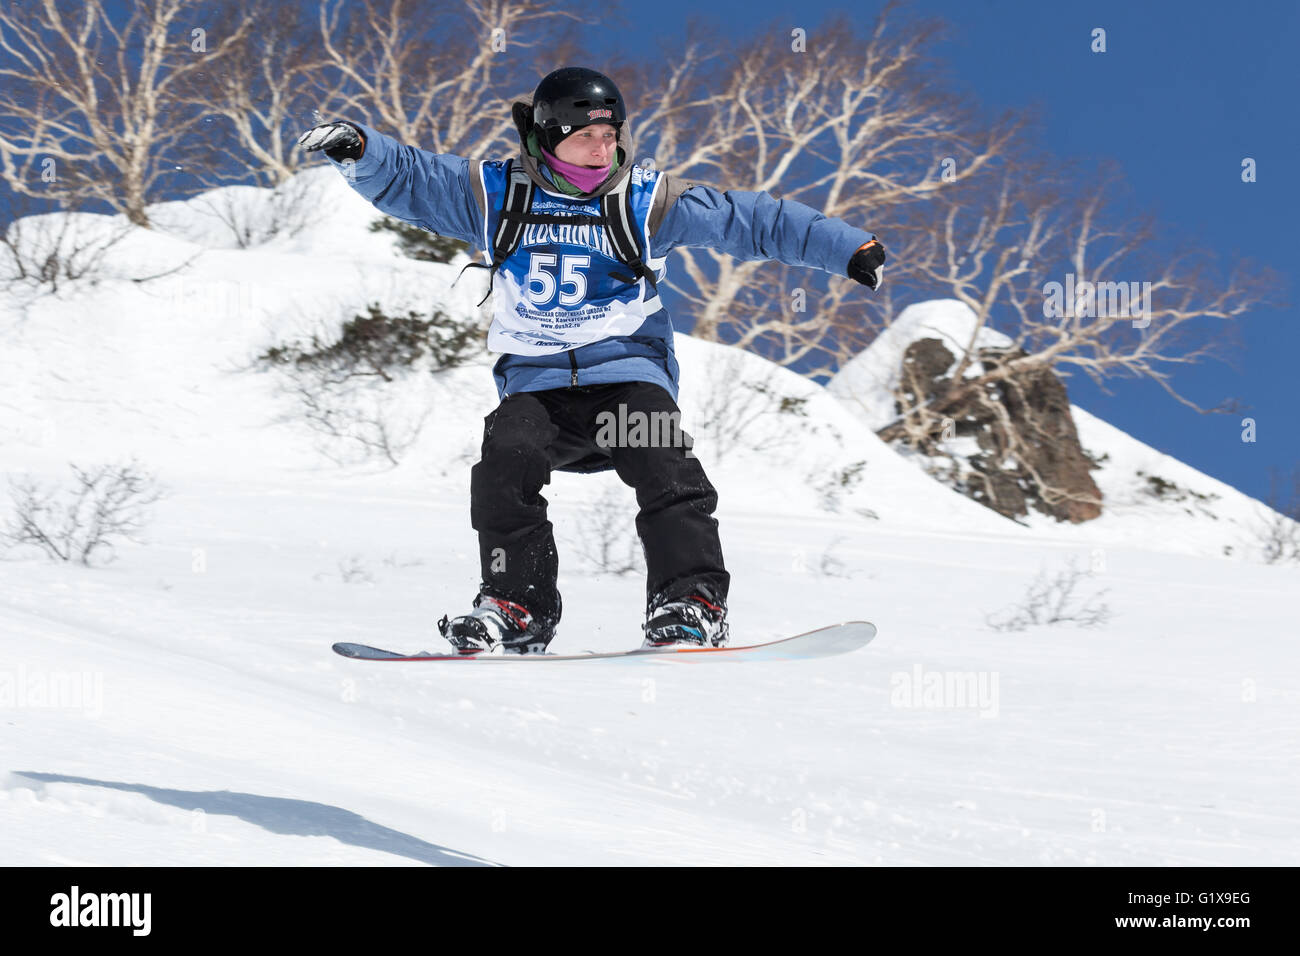 Snowboarder rides steep mountains. Competitions freeride skiers and snowboarders Kamchatka Freeride Open Cup. - Stock Image